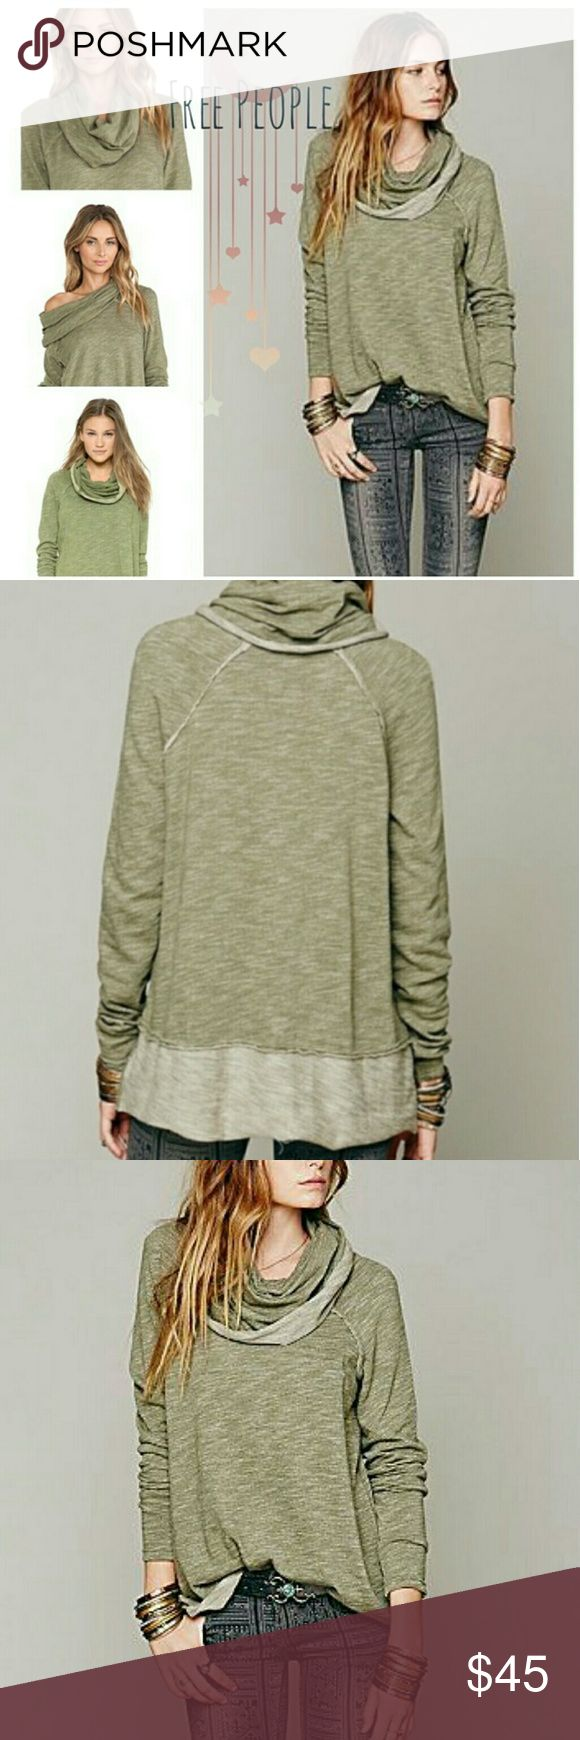 "Free people ""beach"" cocoon pullover cowl neck Free people ""beach"" cocoon oversized pullover cowl neck top in a sage/Olive green. Super cute, super comfy and works in all four seasons of weather. Perfect over your swimsuit for a beach campfire or with leggings and winter boots for a snowy day.  So soft. Super perfect. Good condition. Free People Tops Sweatshirts & Hoodies"